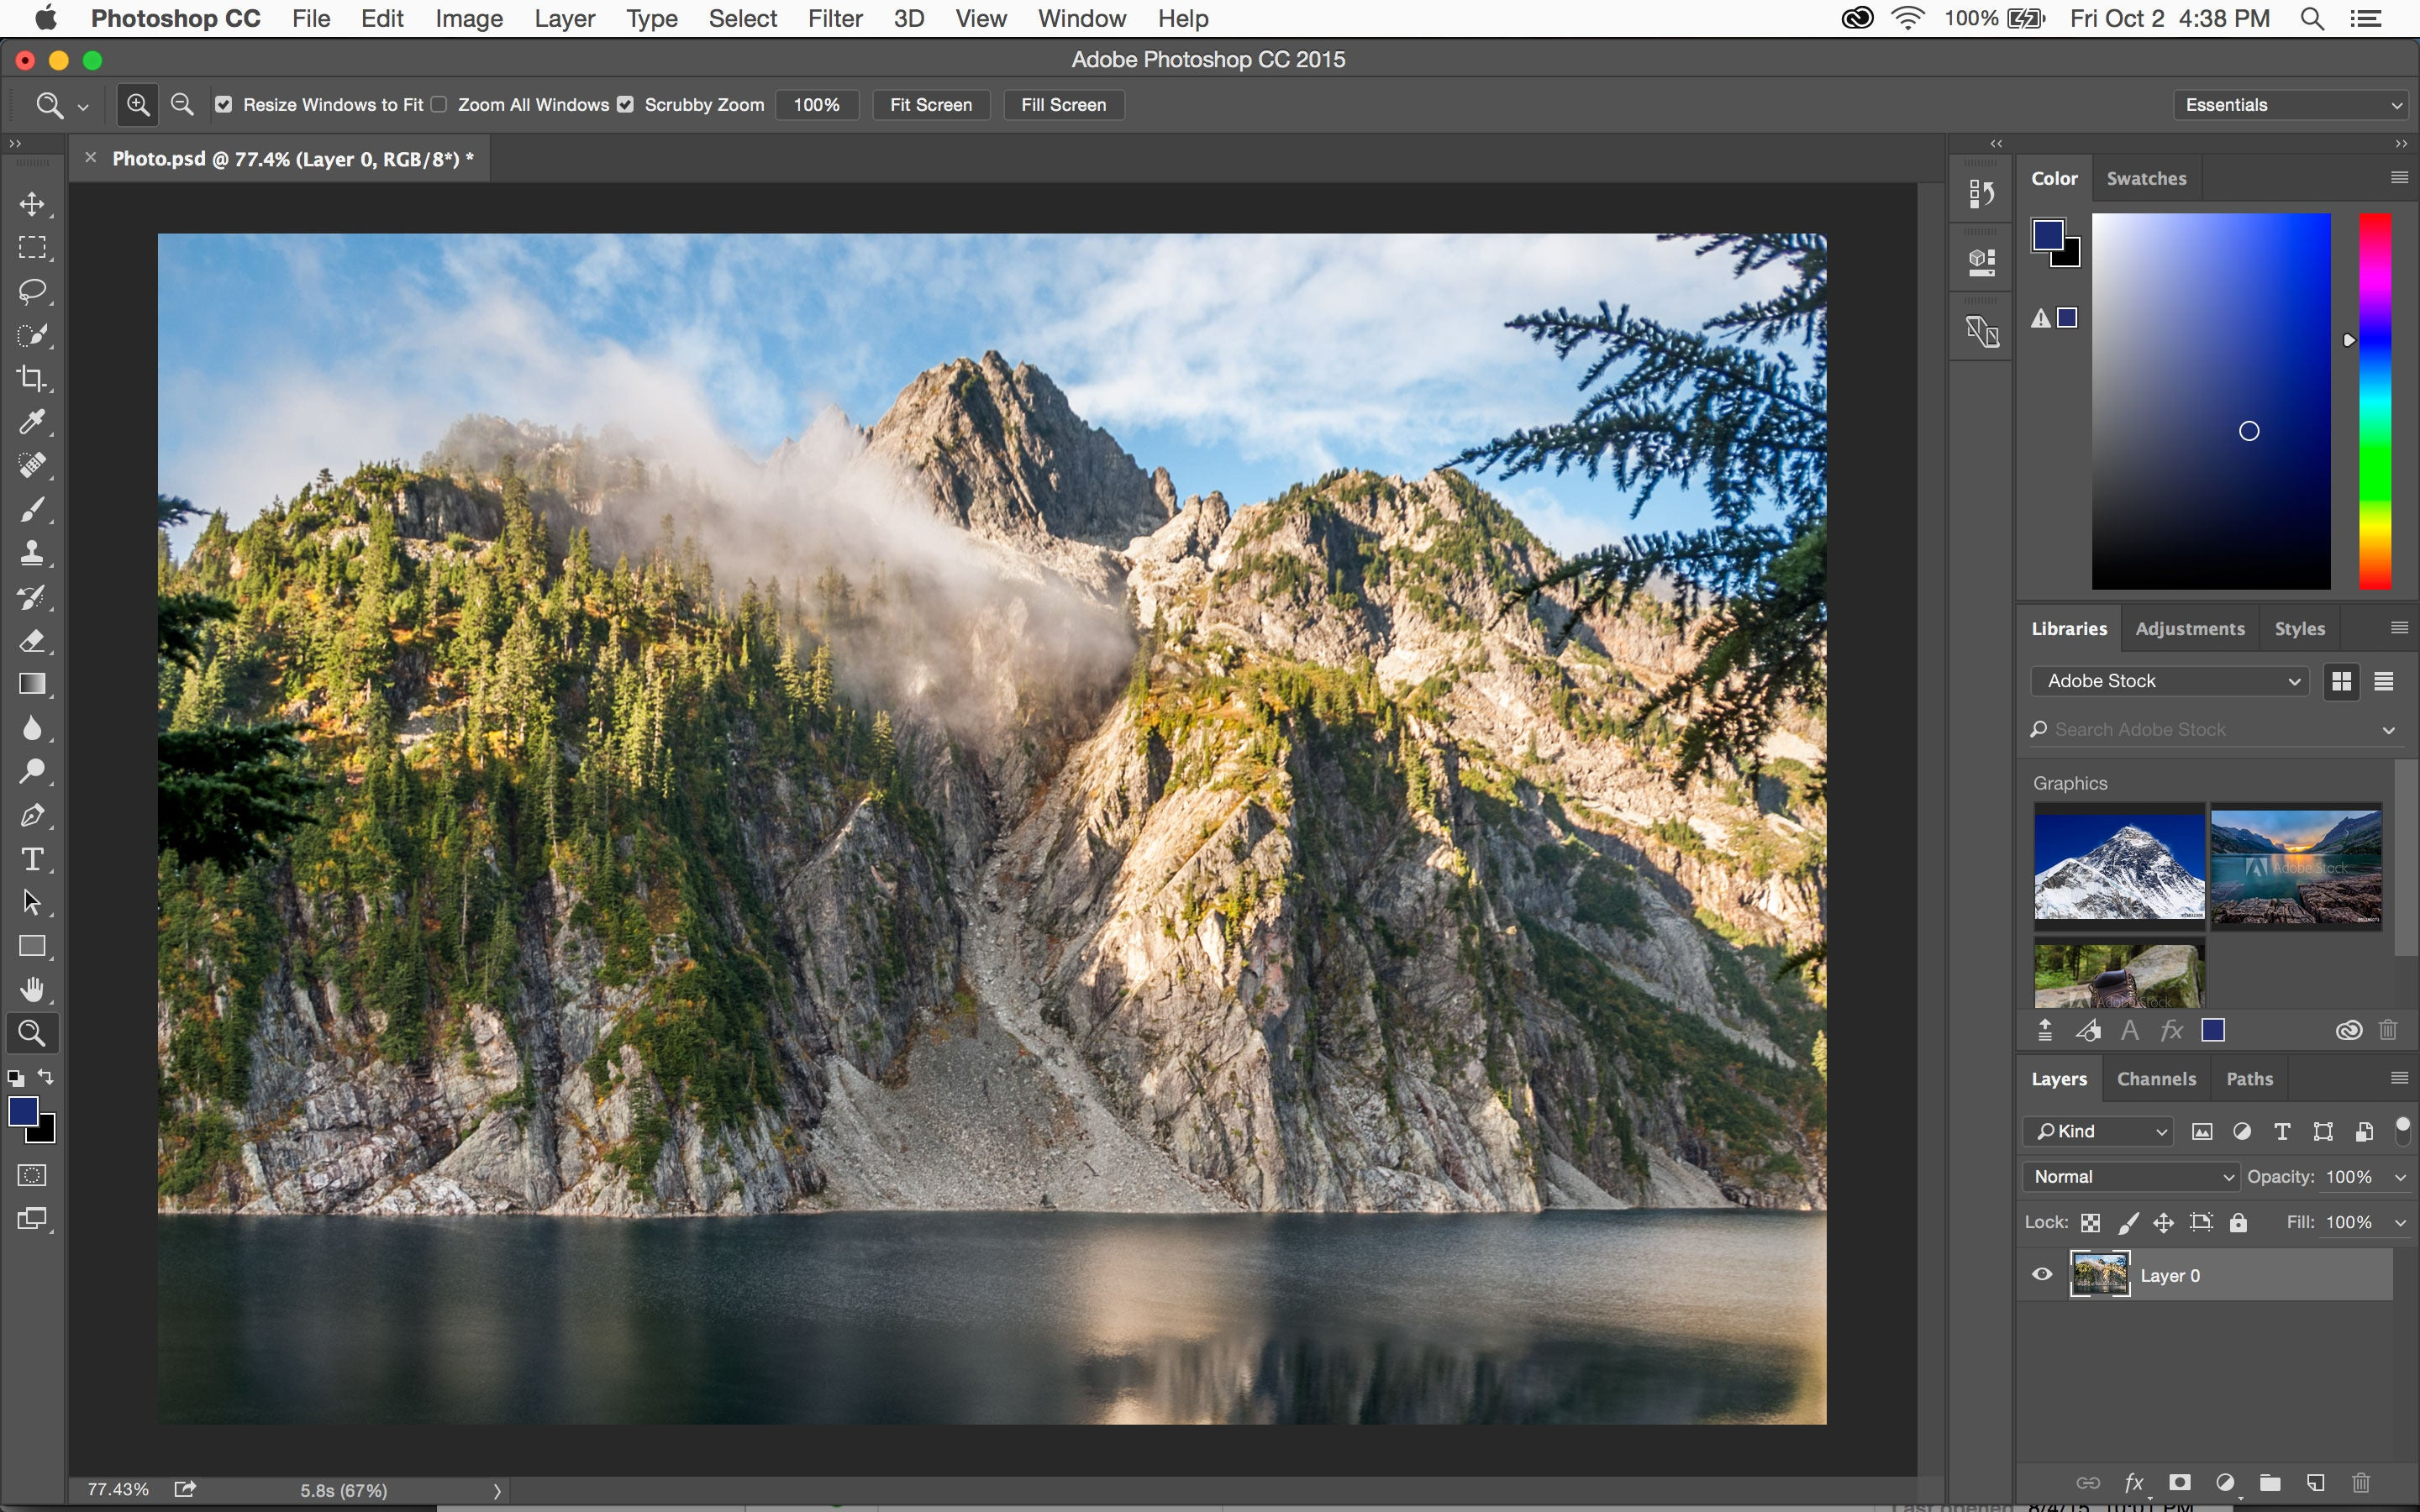 Adobe releases big updates to Photoshop and a new 3D character app, Fuse |  Macworld